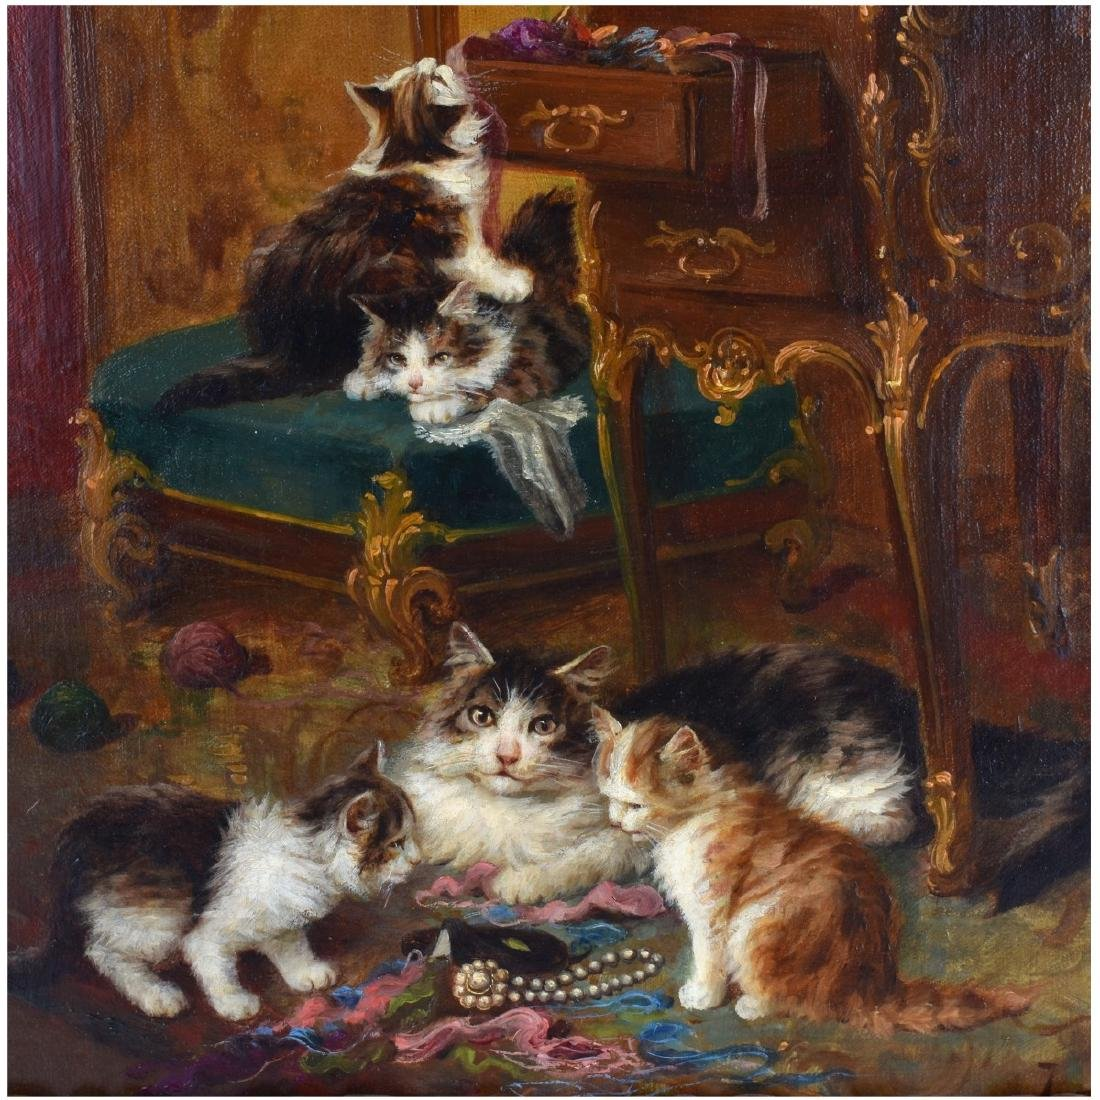 Jules Leroy, French (1833 - 1865) Oil on Canvas - 3